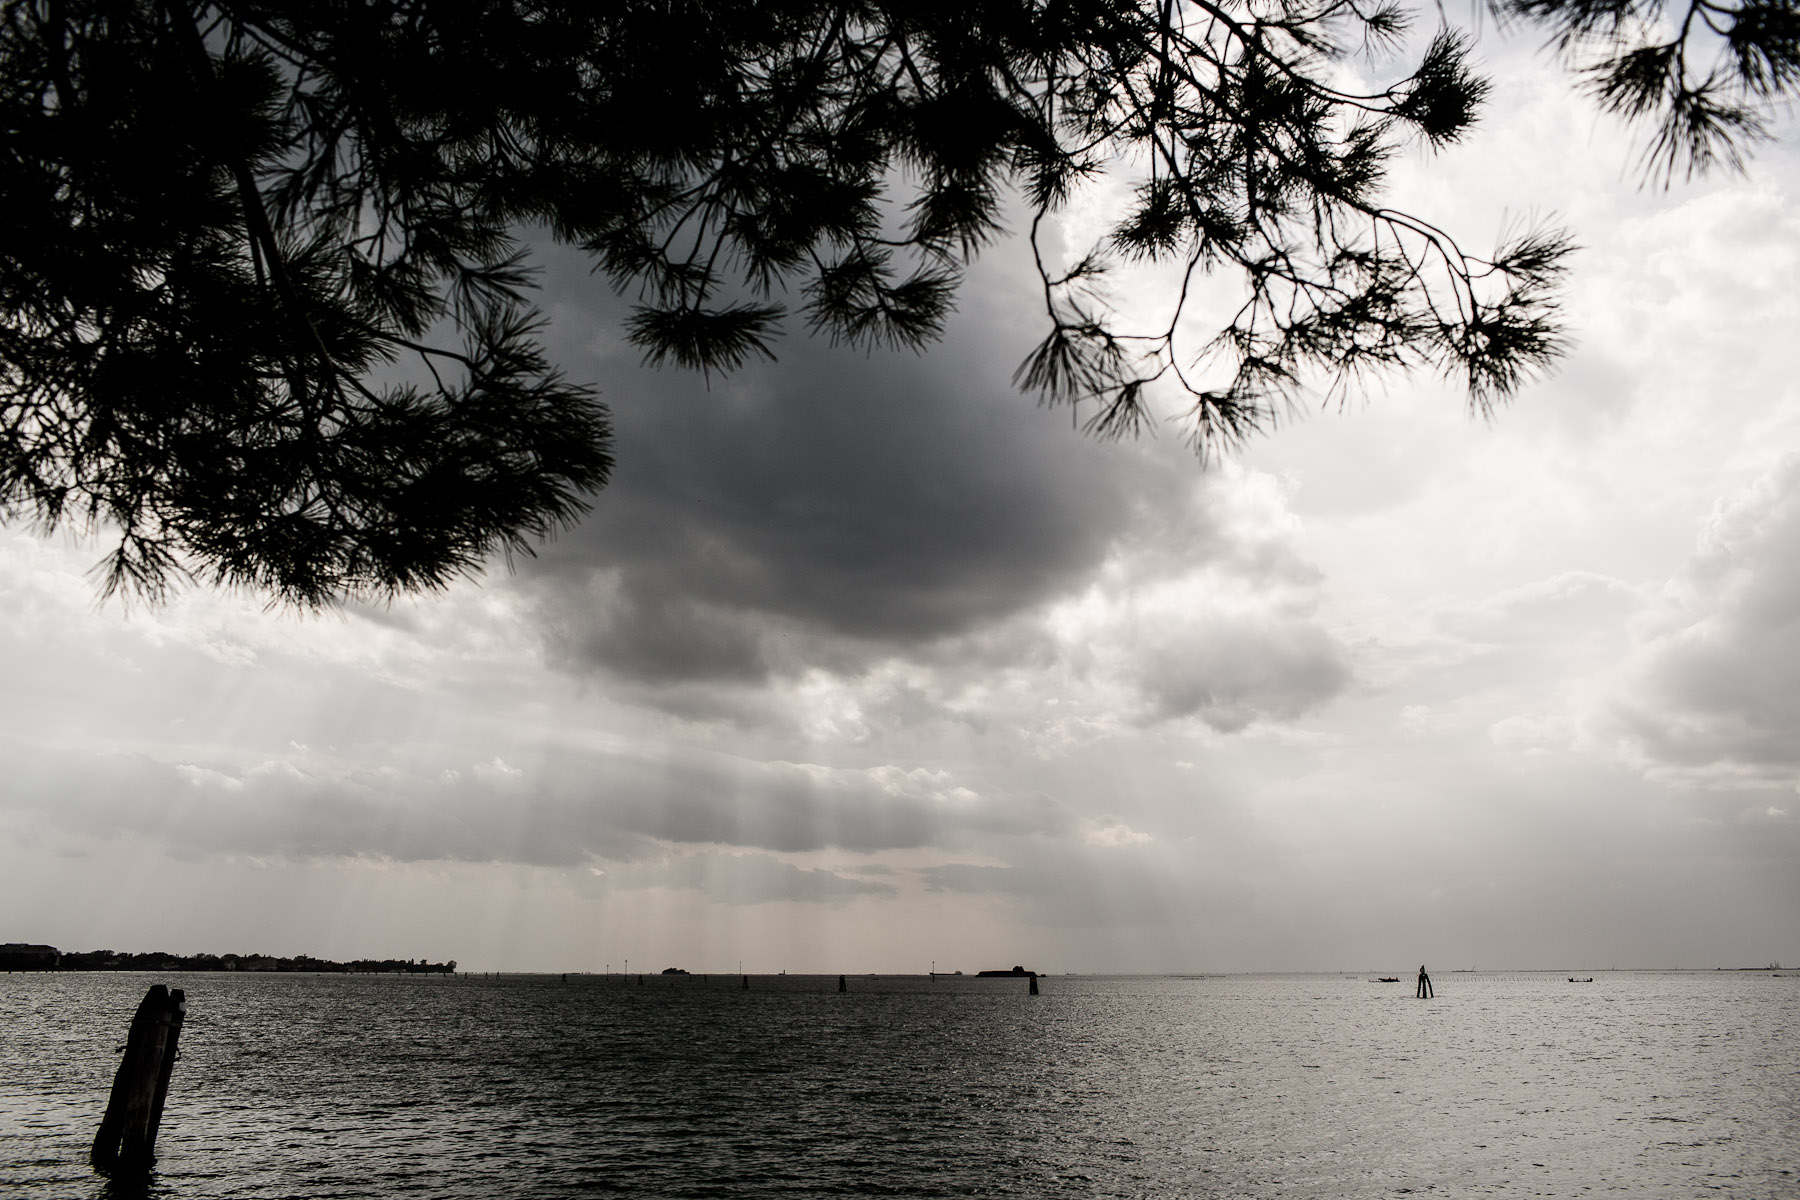 A storm brews over the lagoon near the Lido barrier island on September 26, 2012. In recent years, the Veneto region has seen many severe storms, some even produced tornadoes.